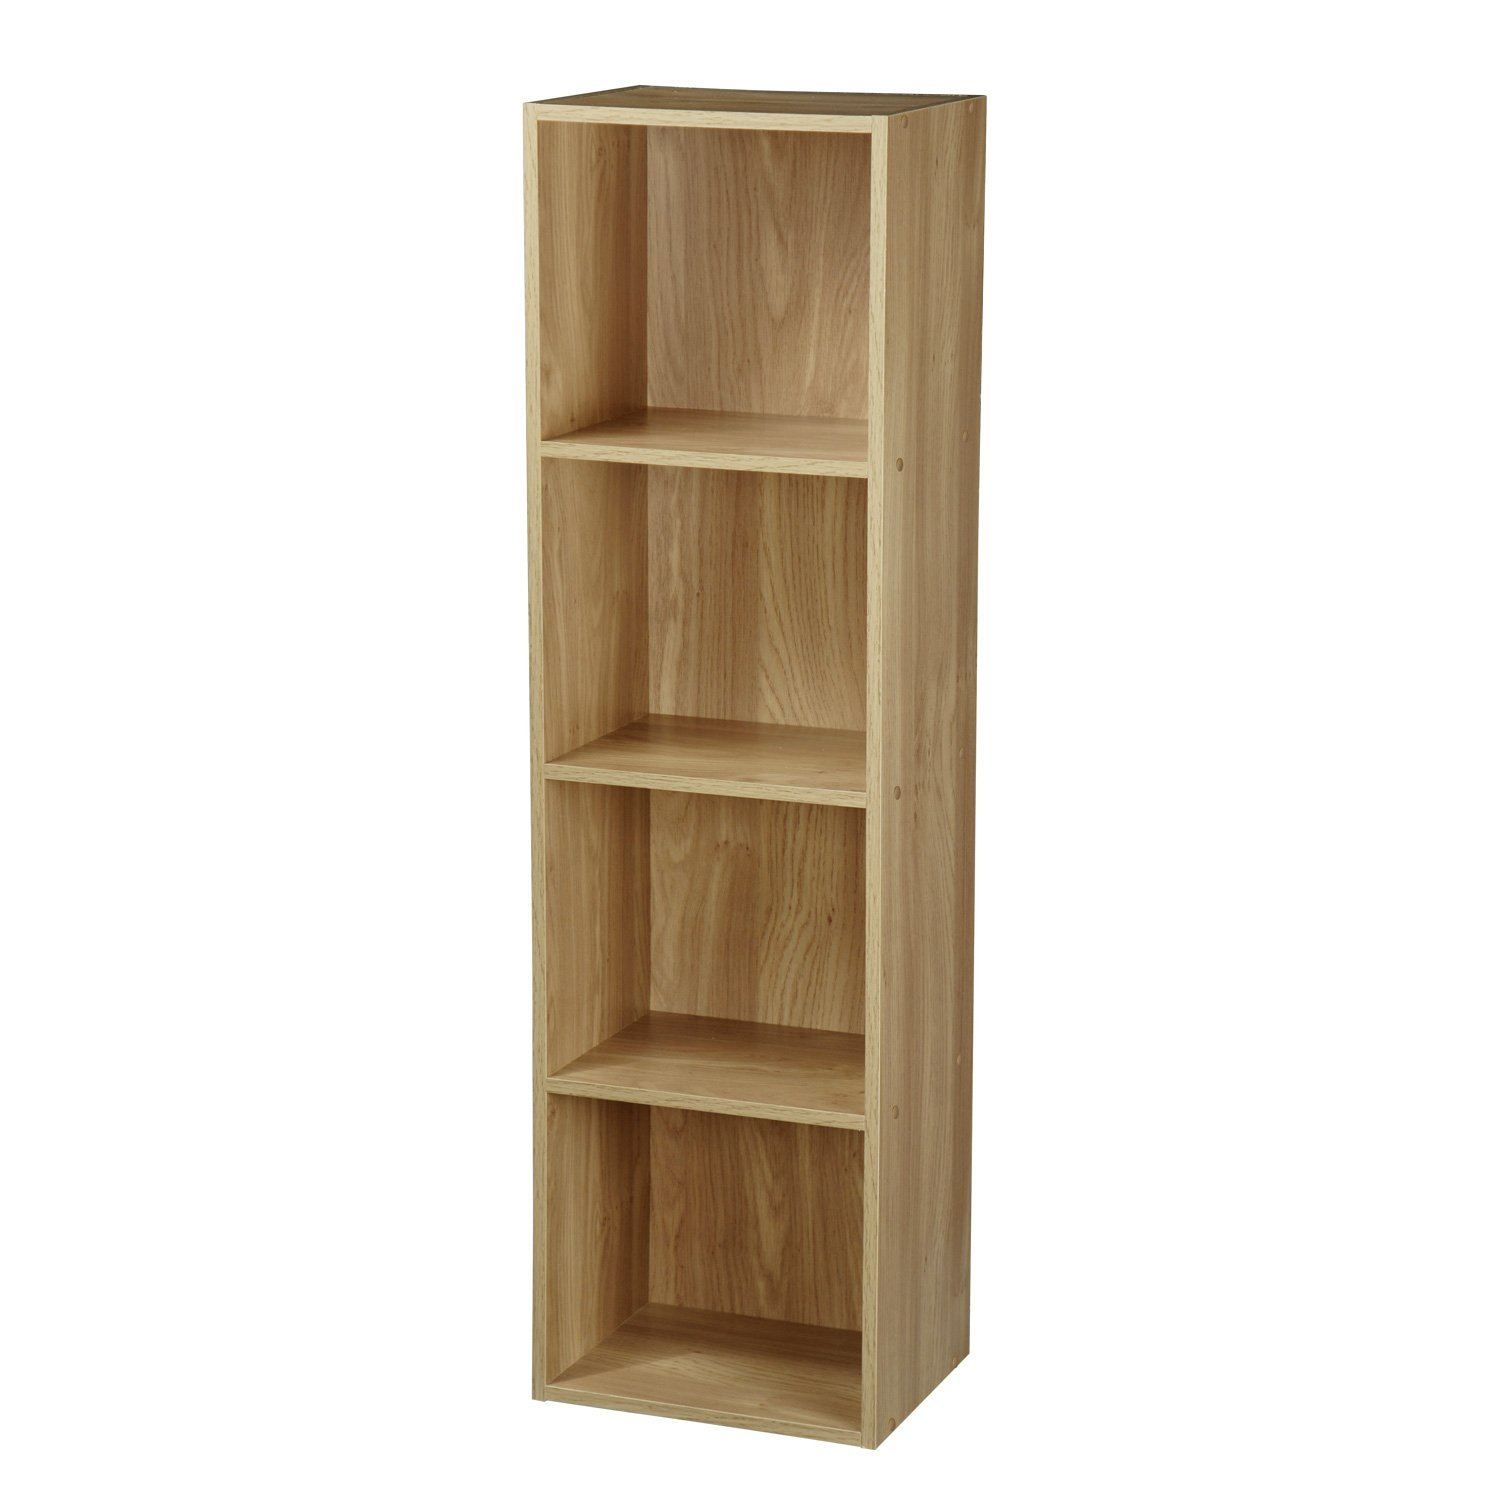 storage shelving unit new wooden display storage units furniture shelve white 26895